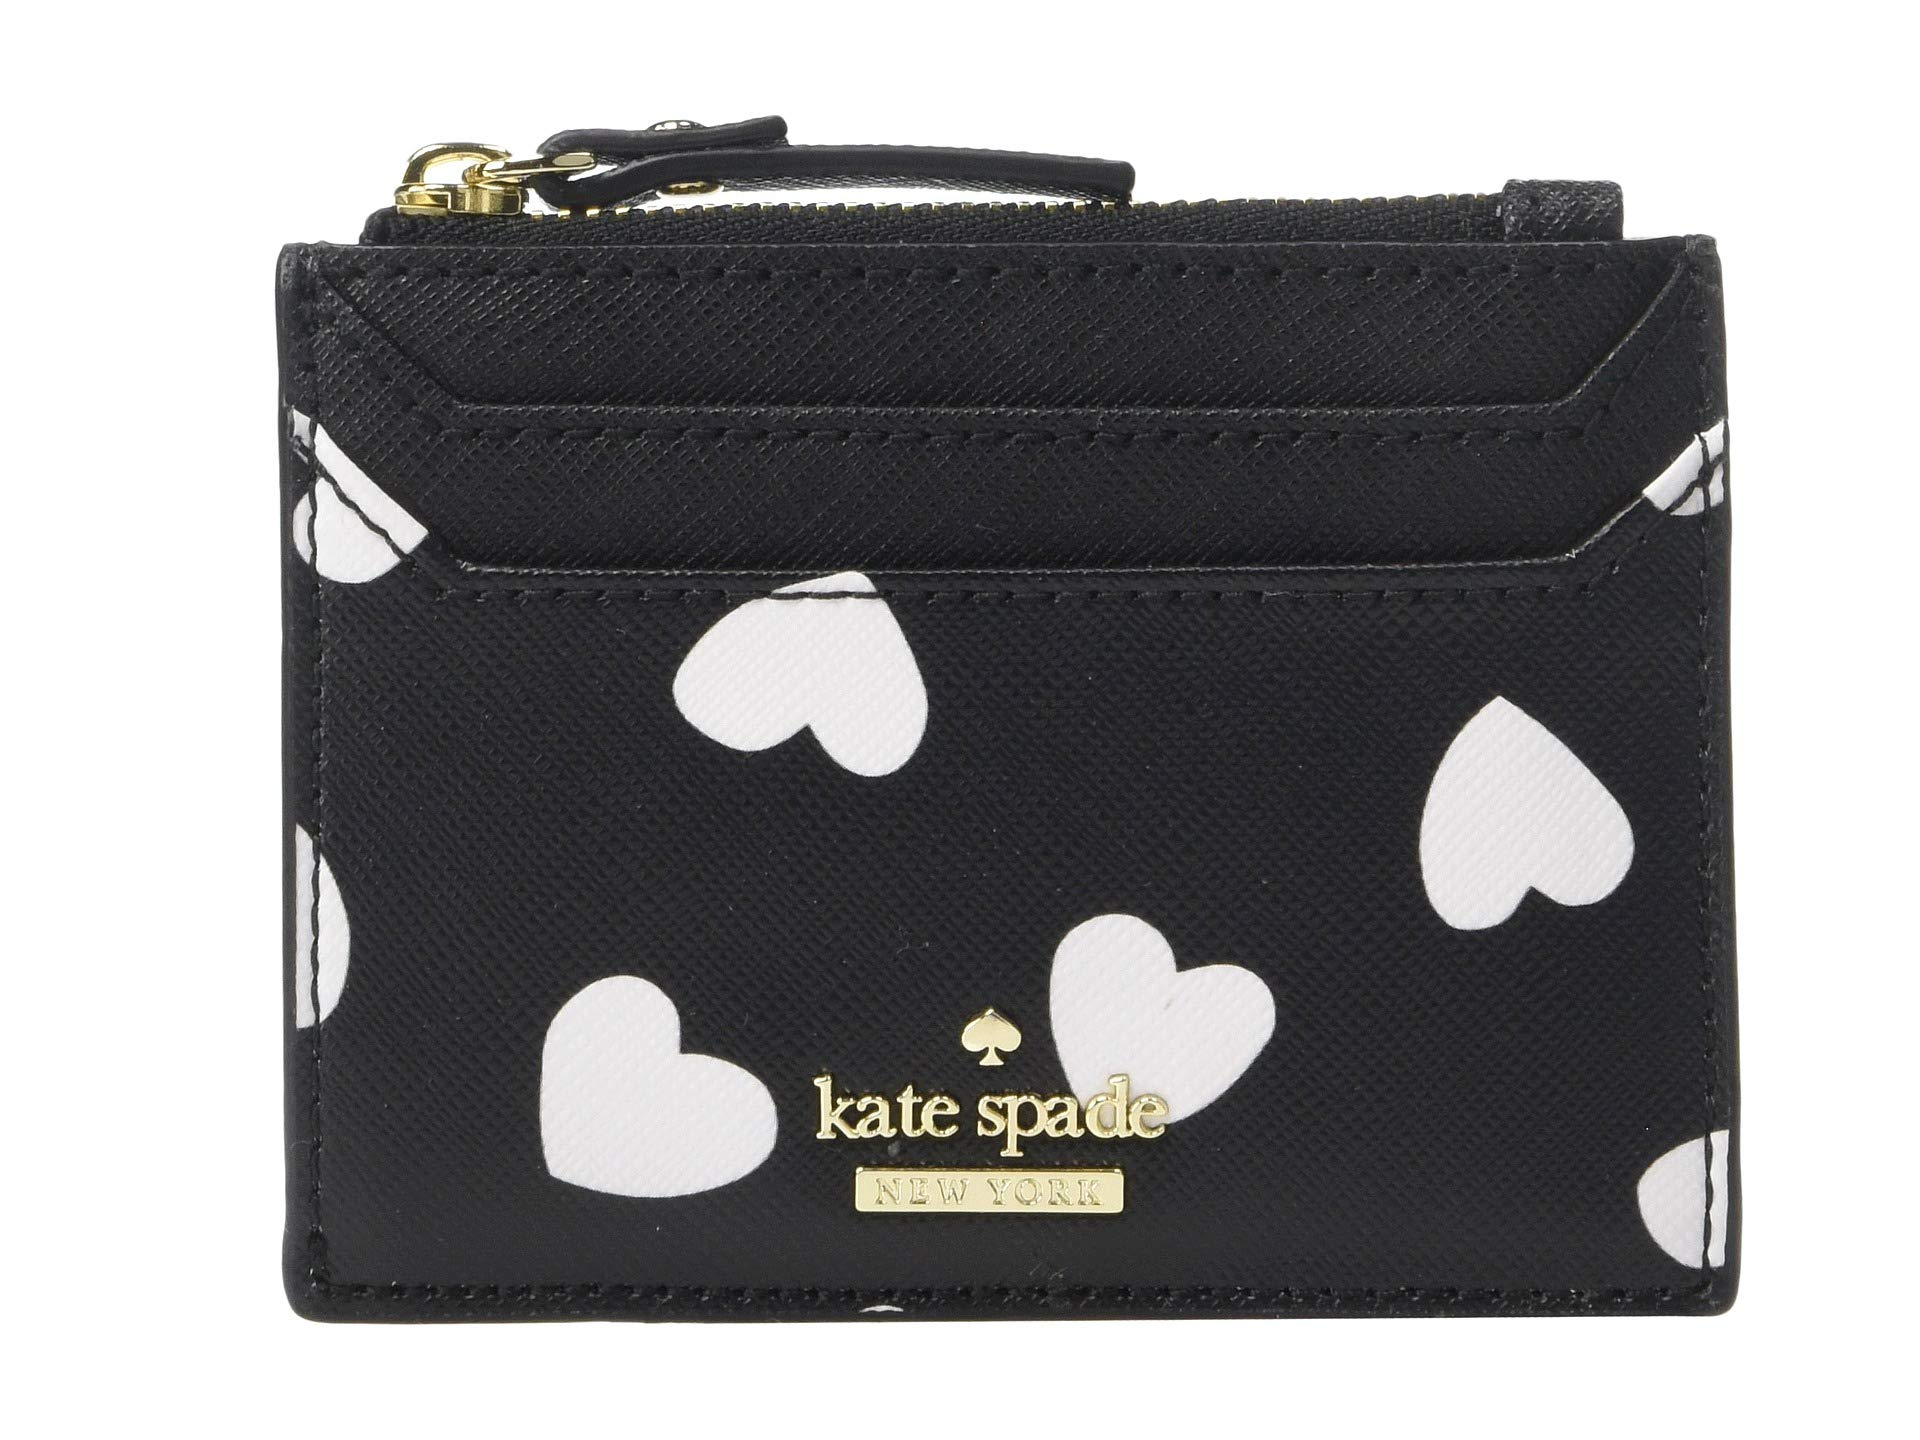 Kate Spade New York Women's Cameron Street Hearts Lalena Card Case, Black/Cream, One Size by Kate Spade New York